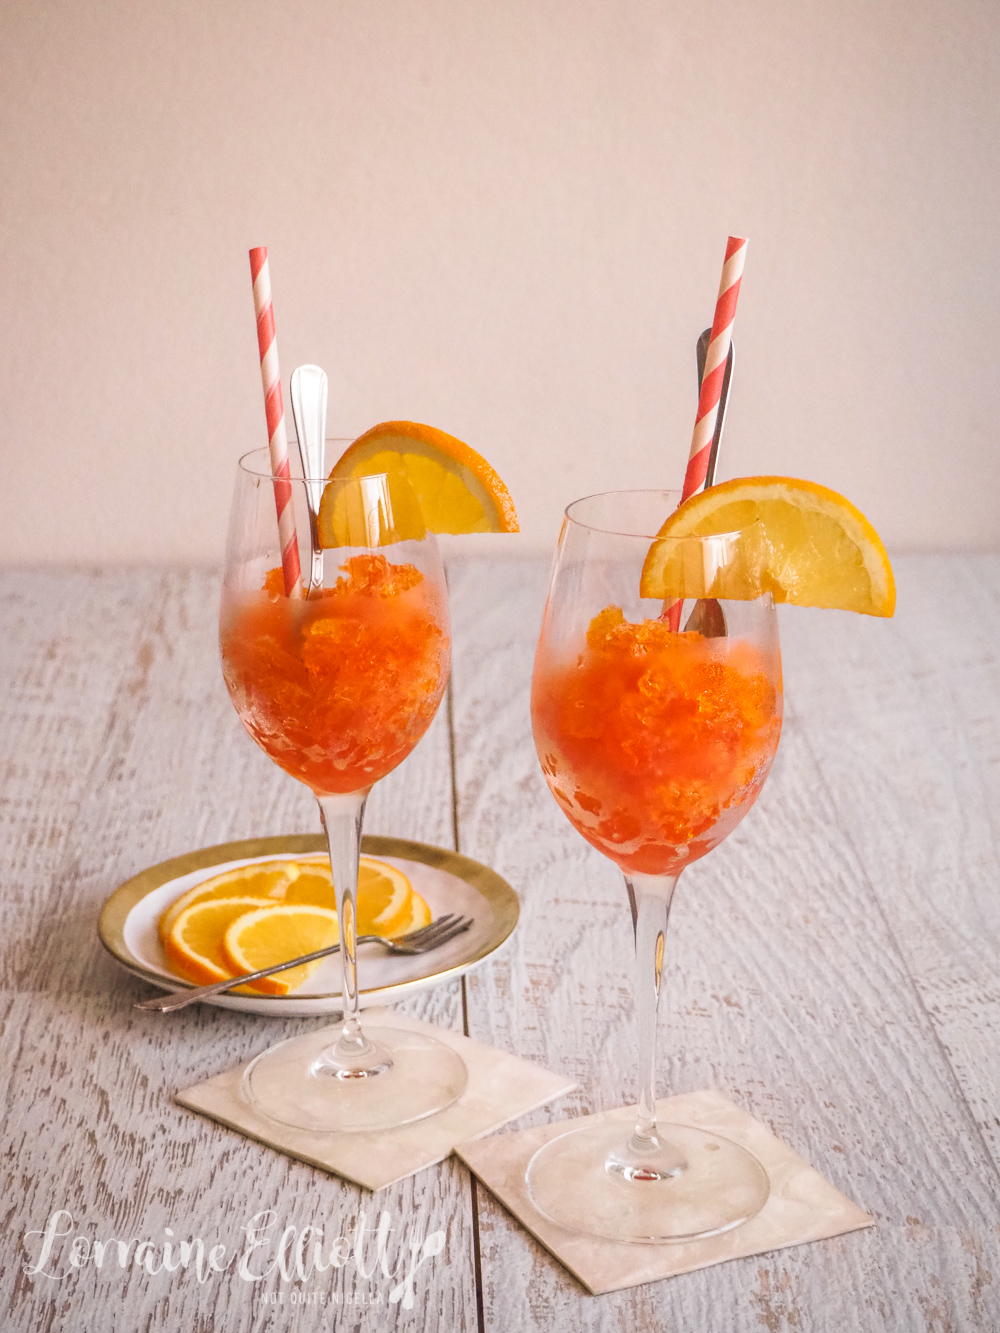 Top 5 Cocktail Drink Ideas